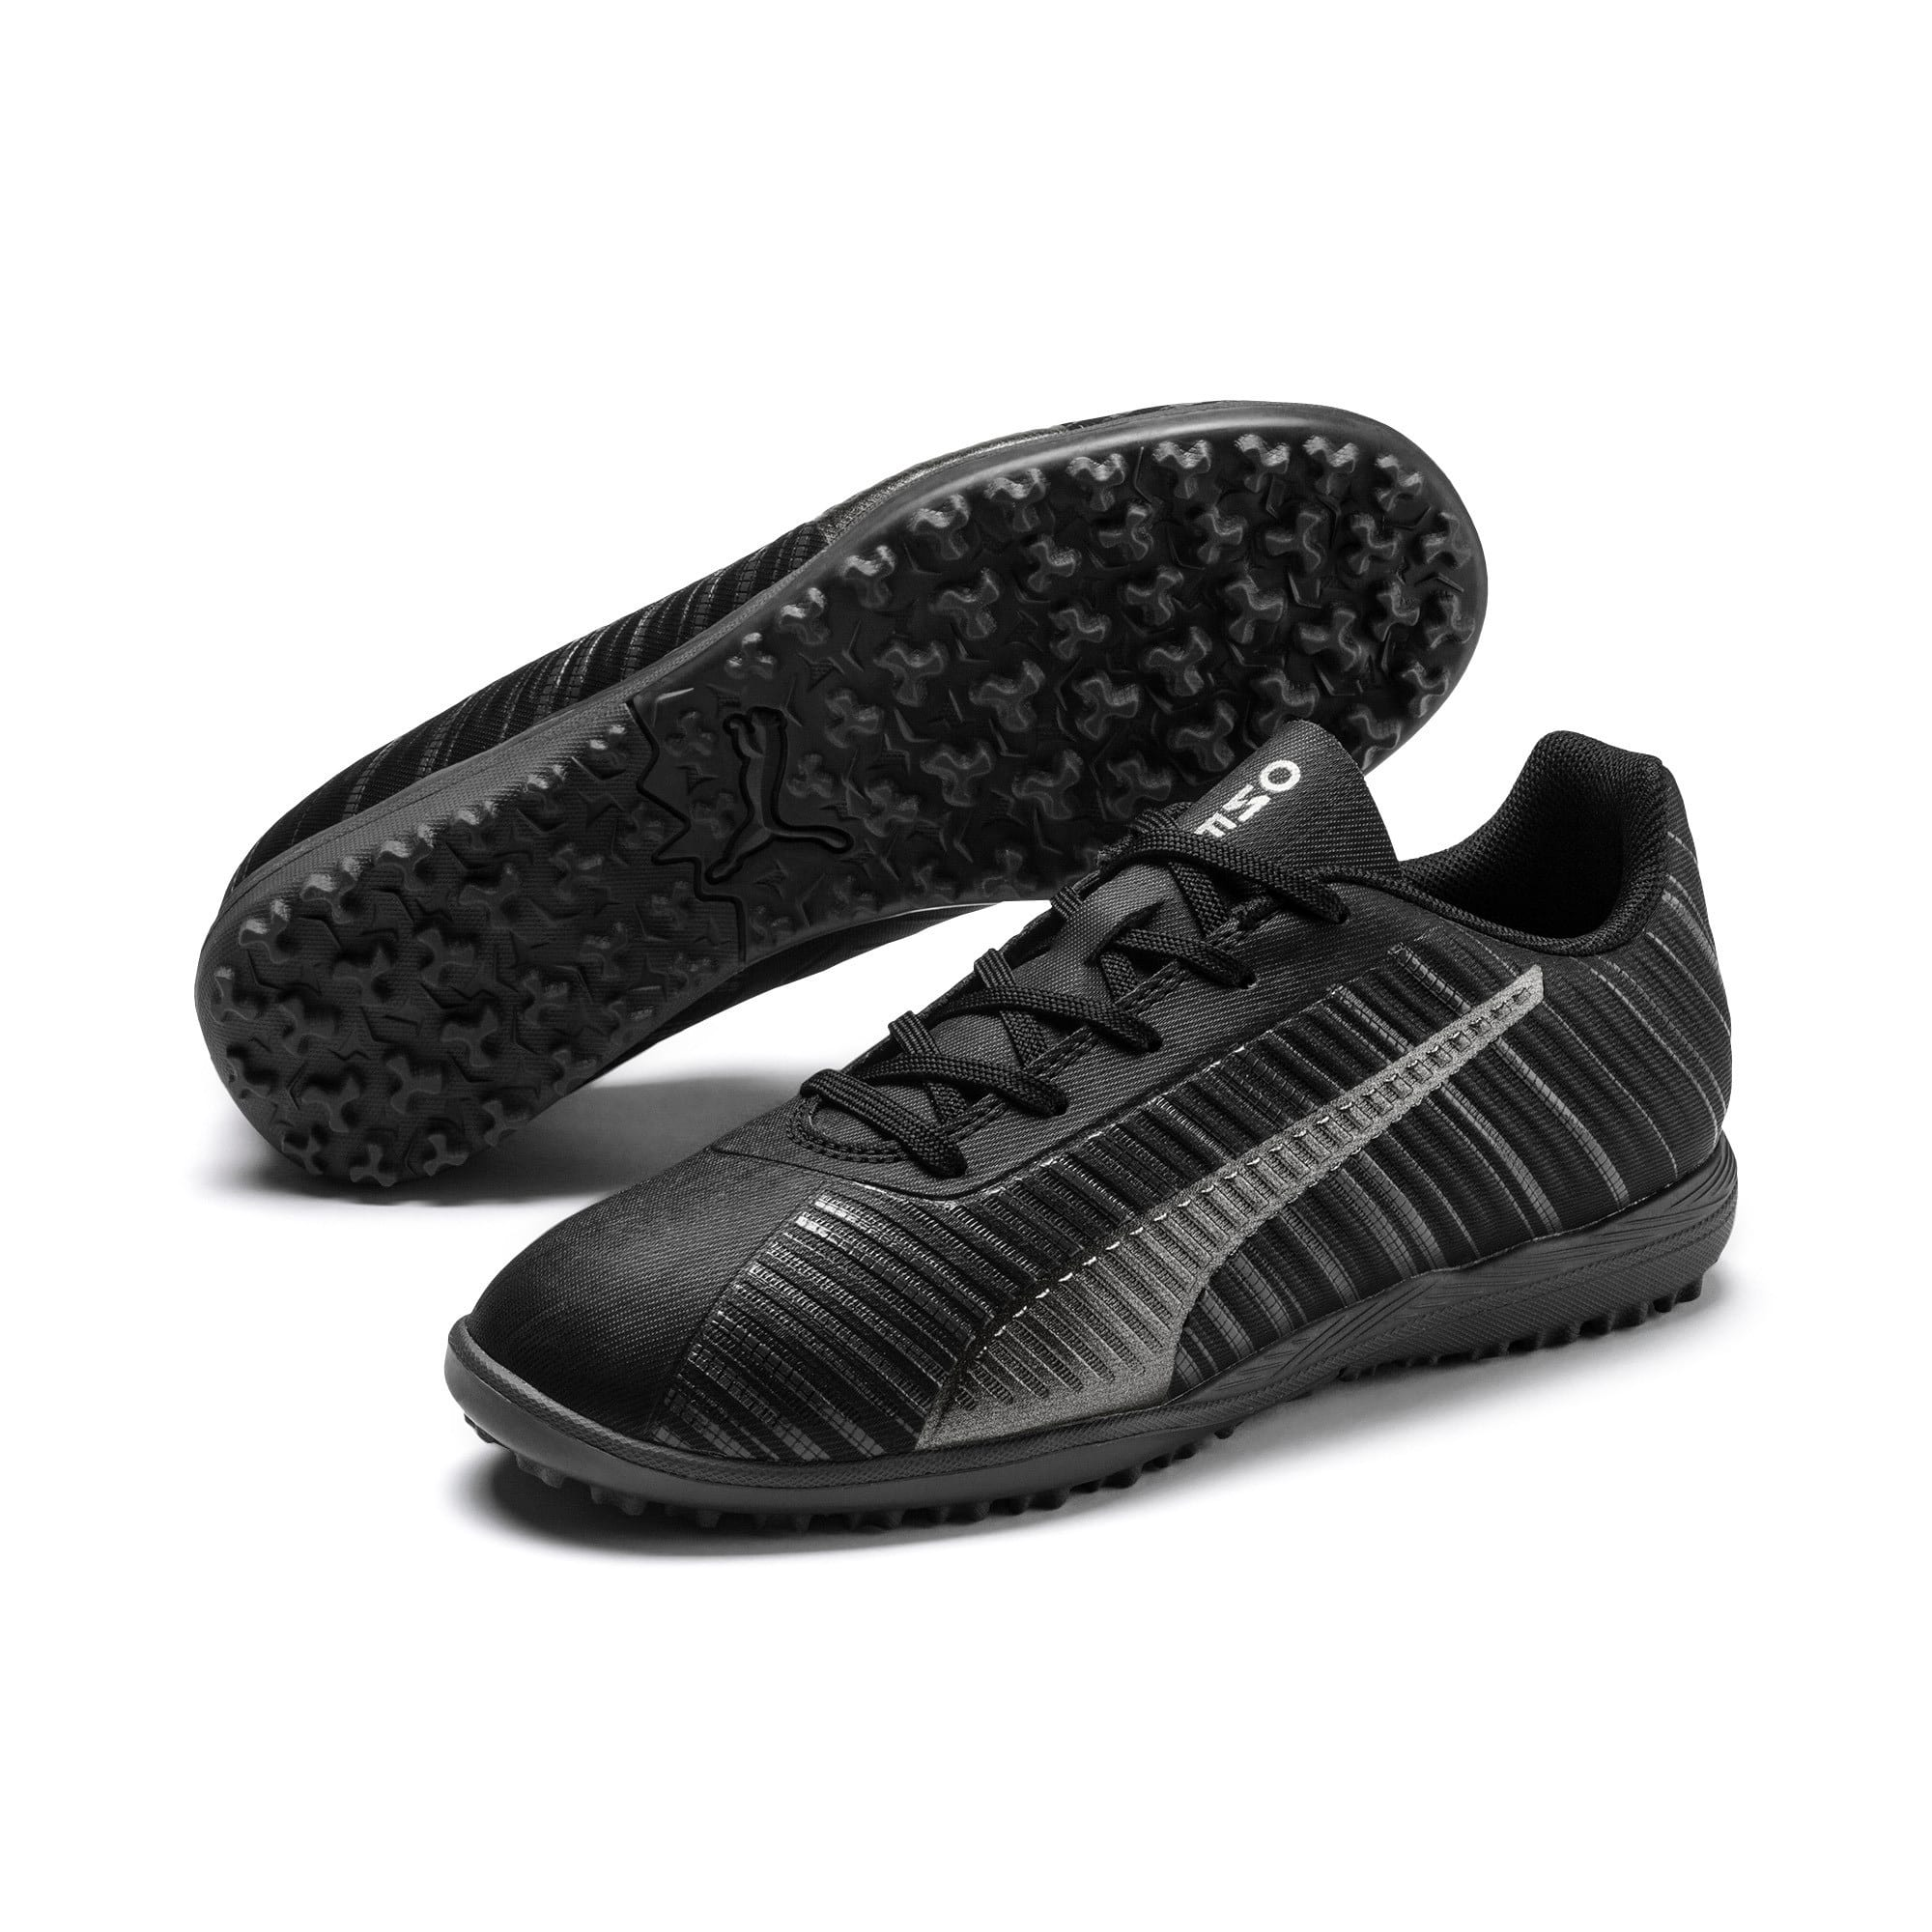 Thumbnail 2 of PUMA ONE 5.4 TT Youth Football Boots, Black-Black-Puma Aged Silver, medium